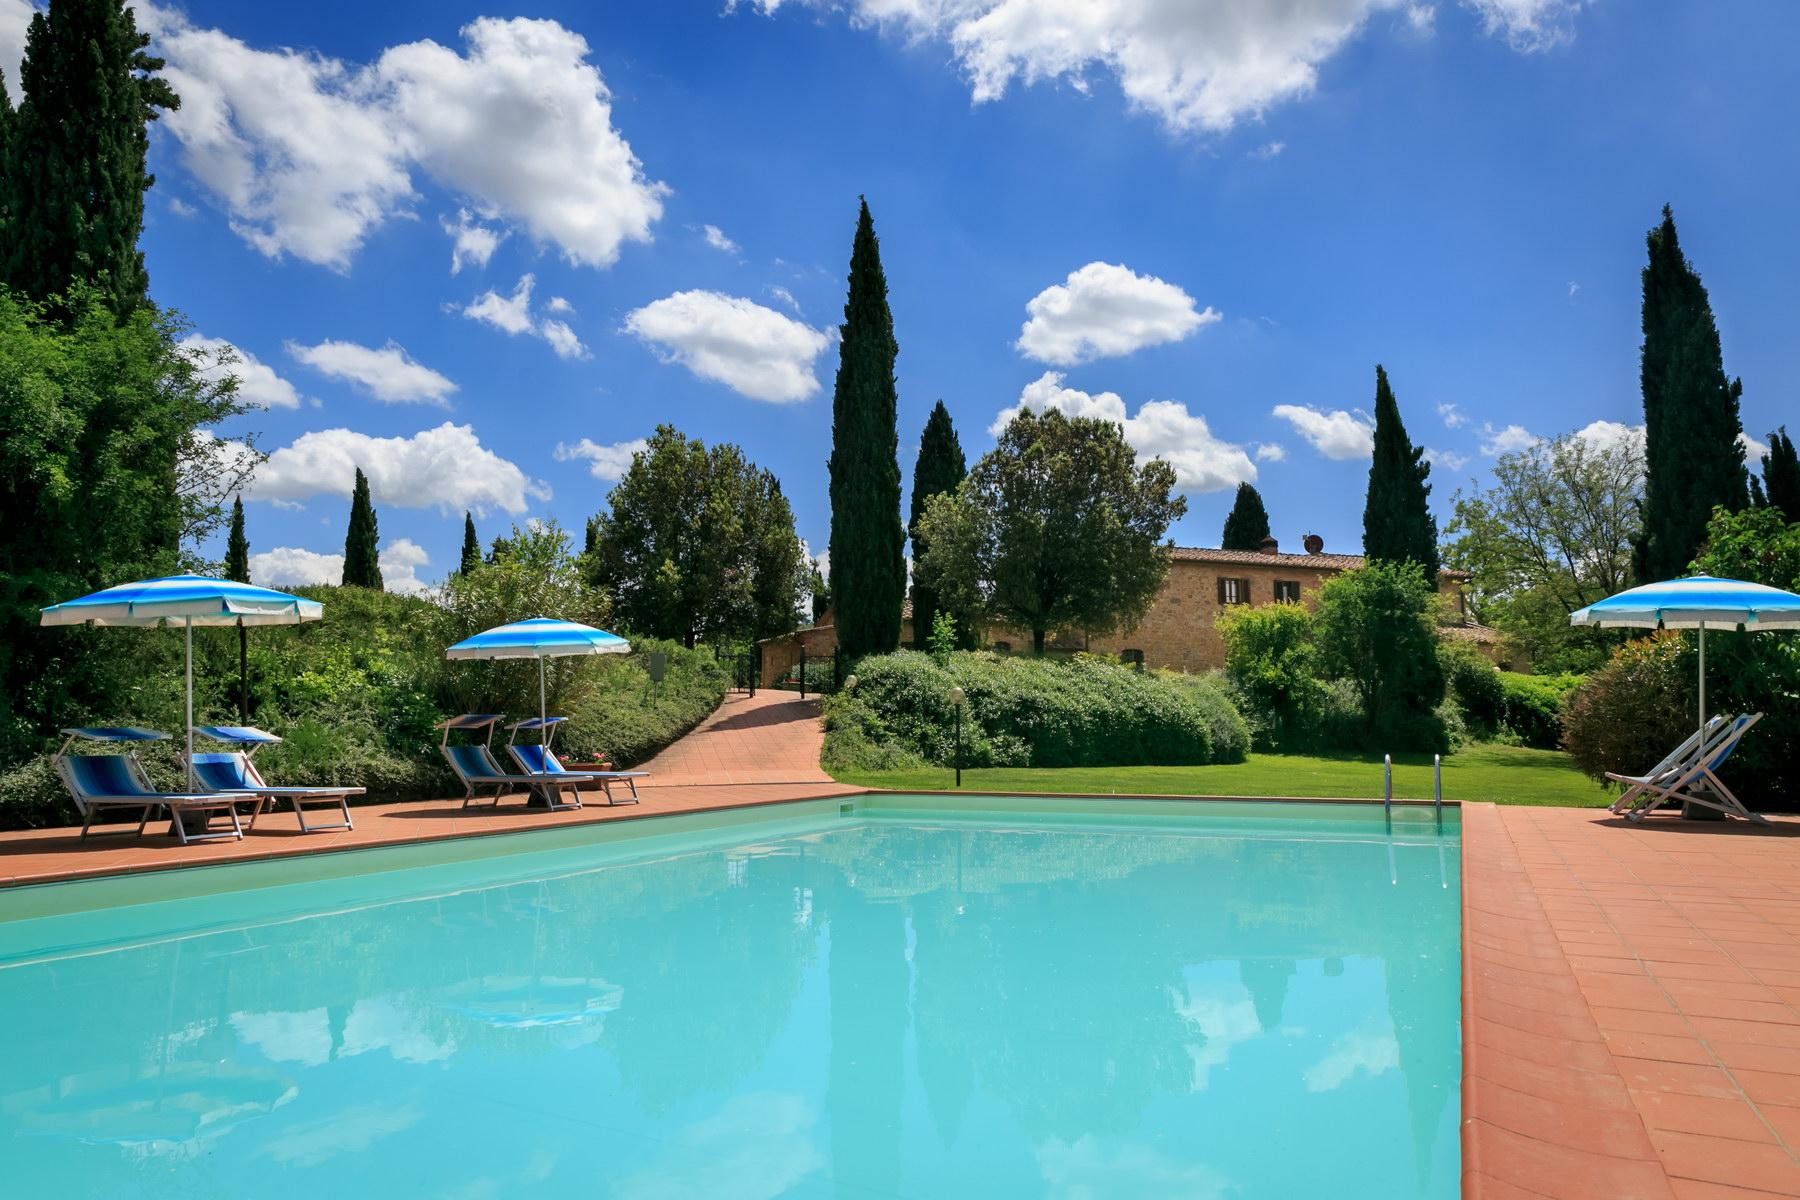 Wonderful countryhouse in the tuscan countryside - 4